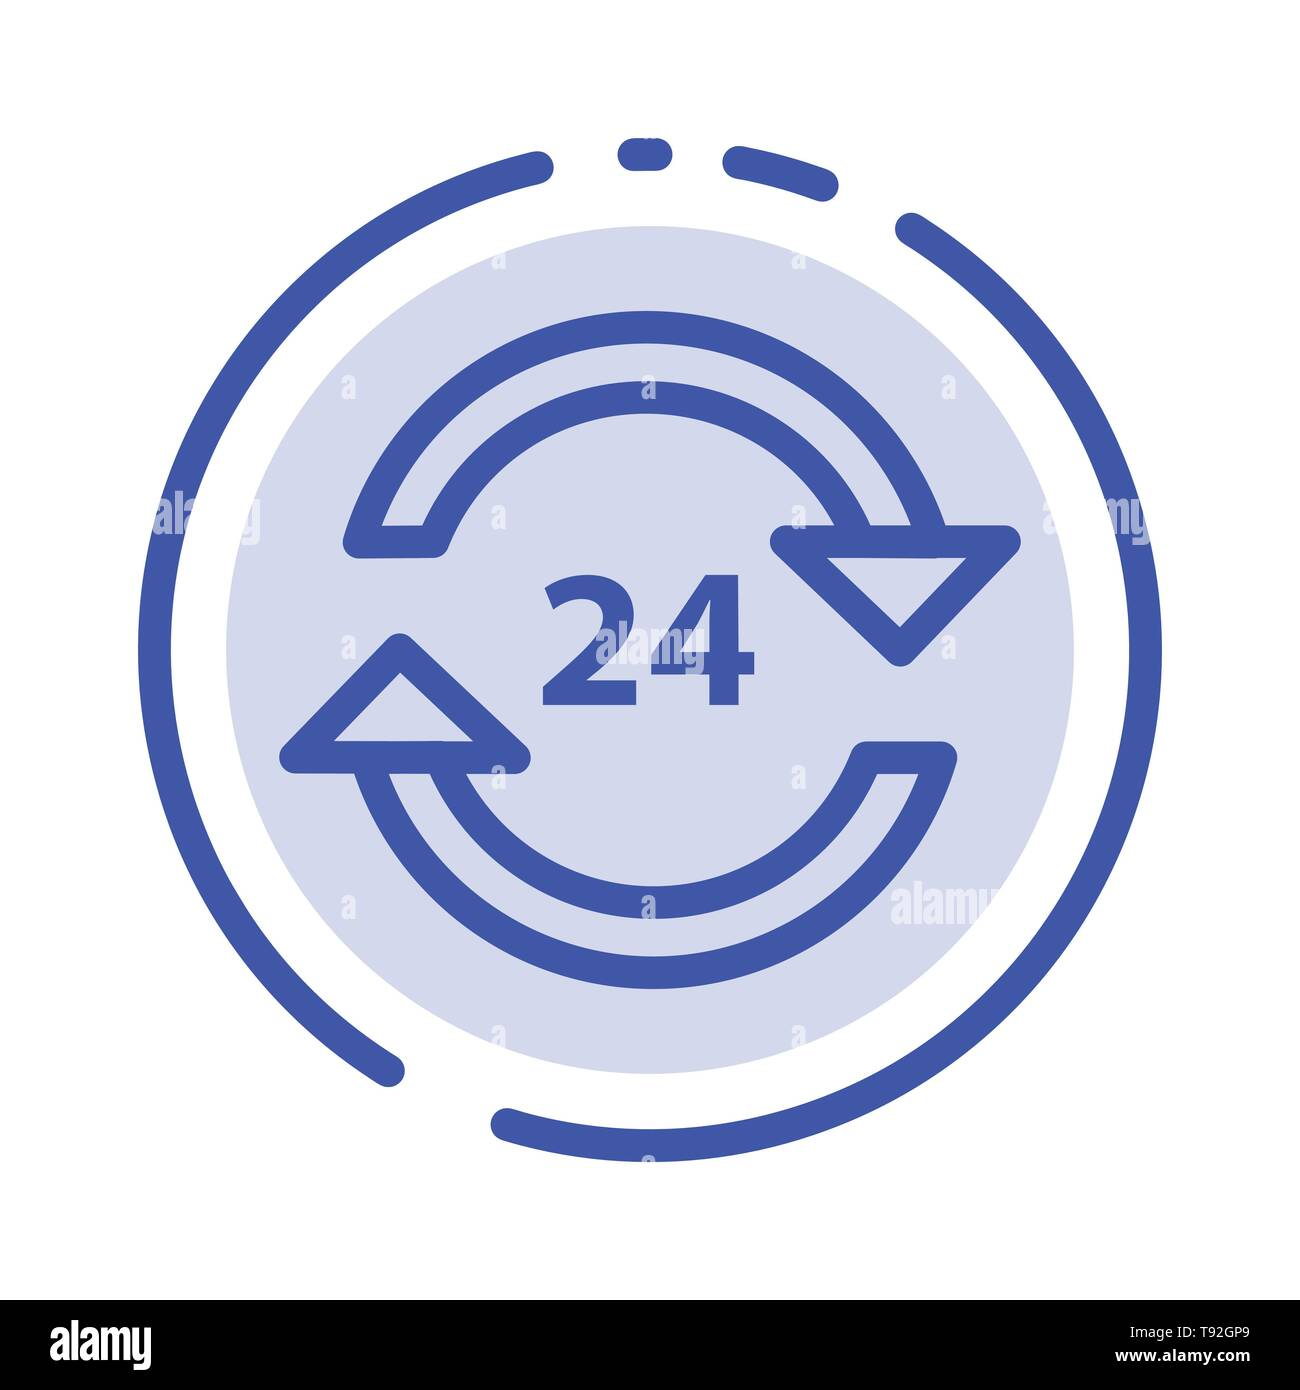 Concierge, Hotel, None, Round The Clock, Service, Stop Blue Dotted Line Line Icon - Stock Image